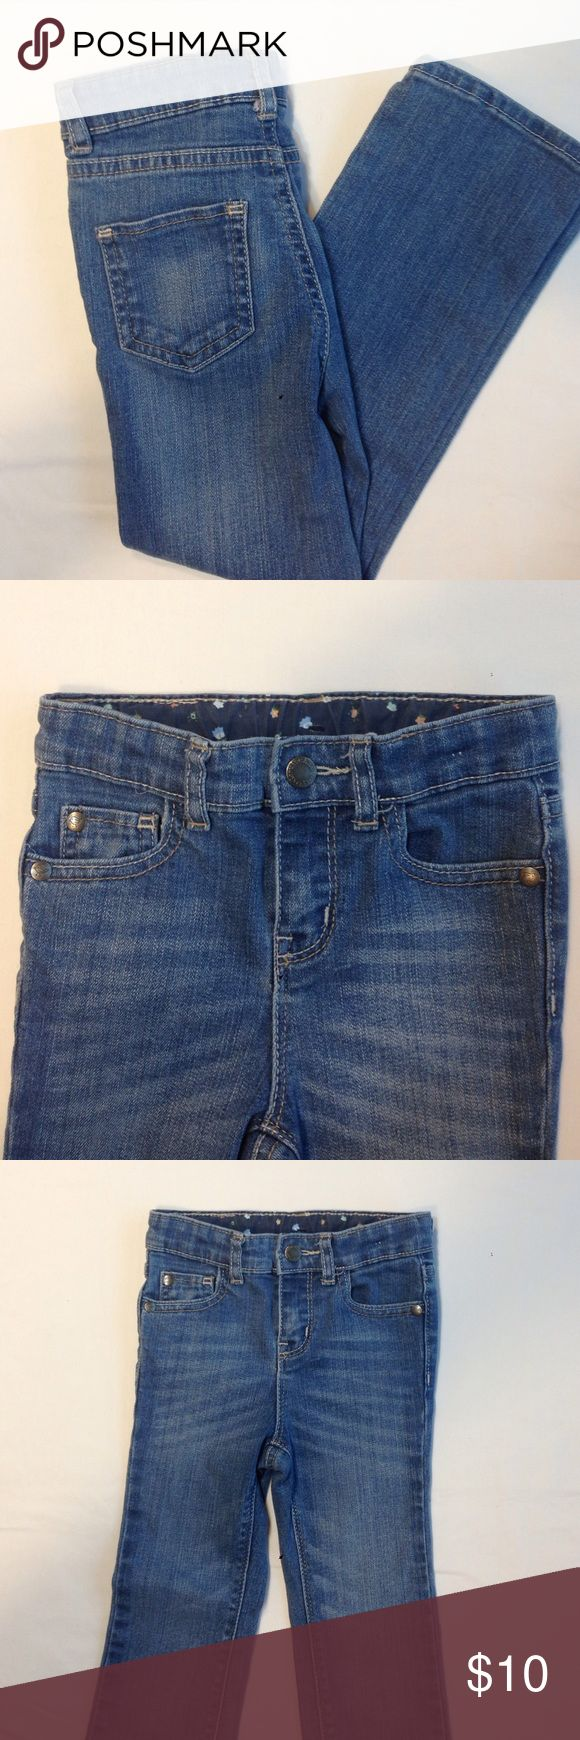 Genuine Kids from Osh Kosh Light Blue Jeans Super stylish lighter colored blue jeans. Size 3T. I feel these are pretty long for size 3T. Inseam 16 inches.  Straight leg, snap closure, adjustable waist. Great for your tall slender girl! Great condition. Osh Kosh Bottoms Jeans